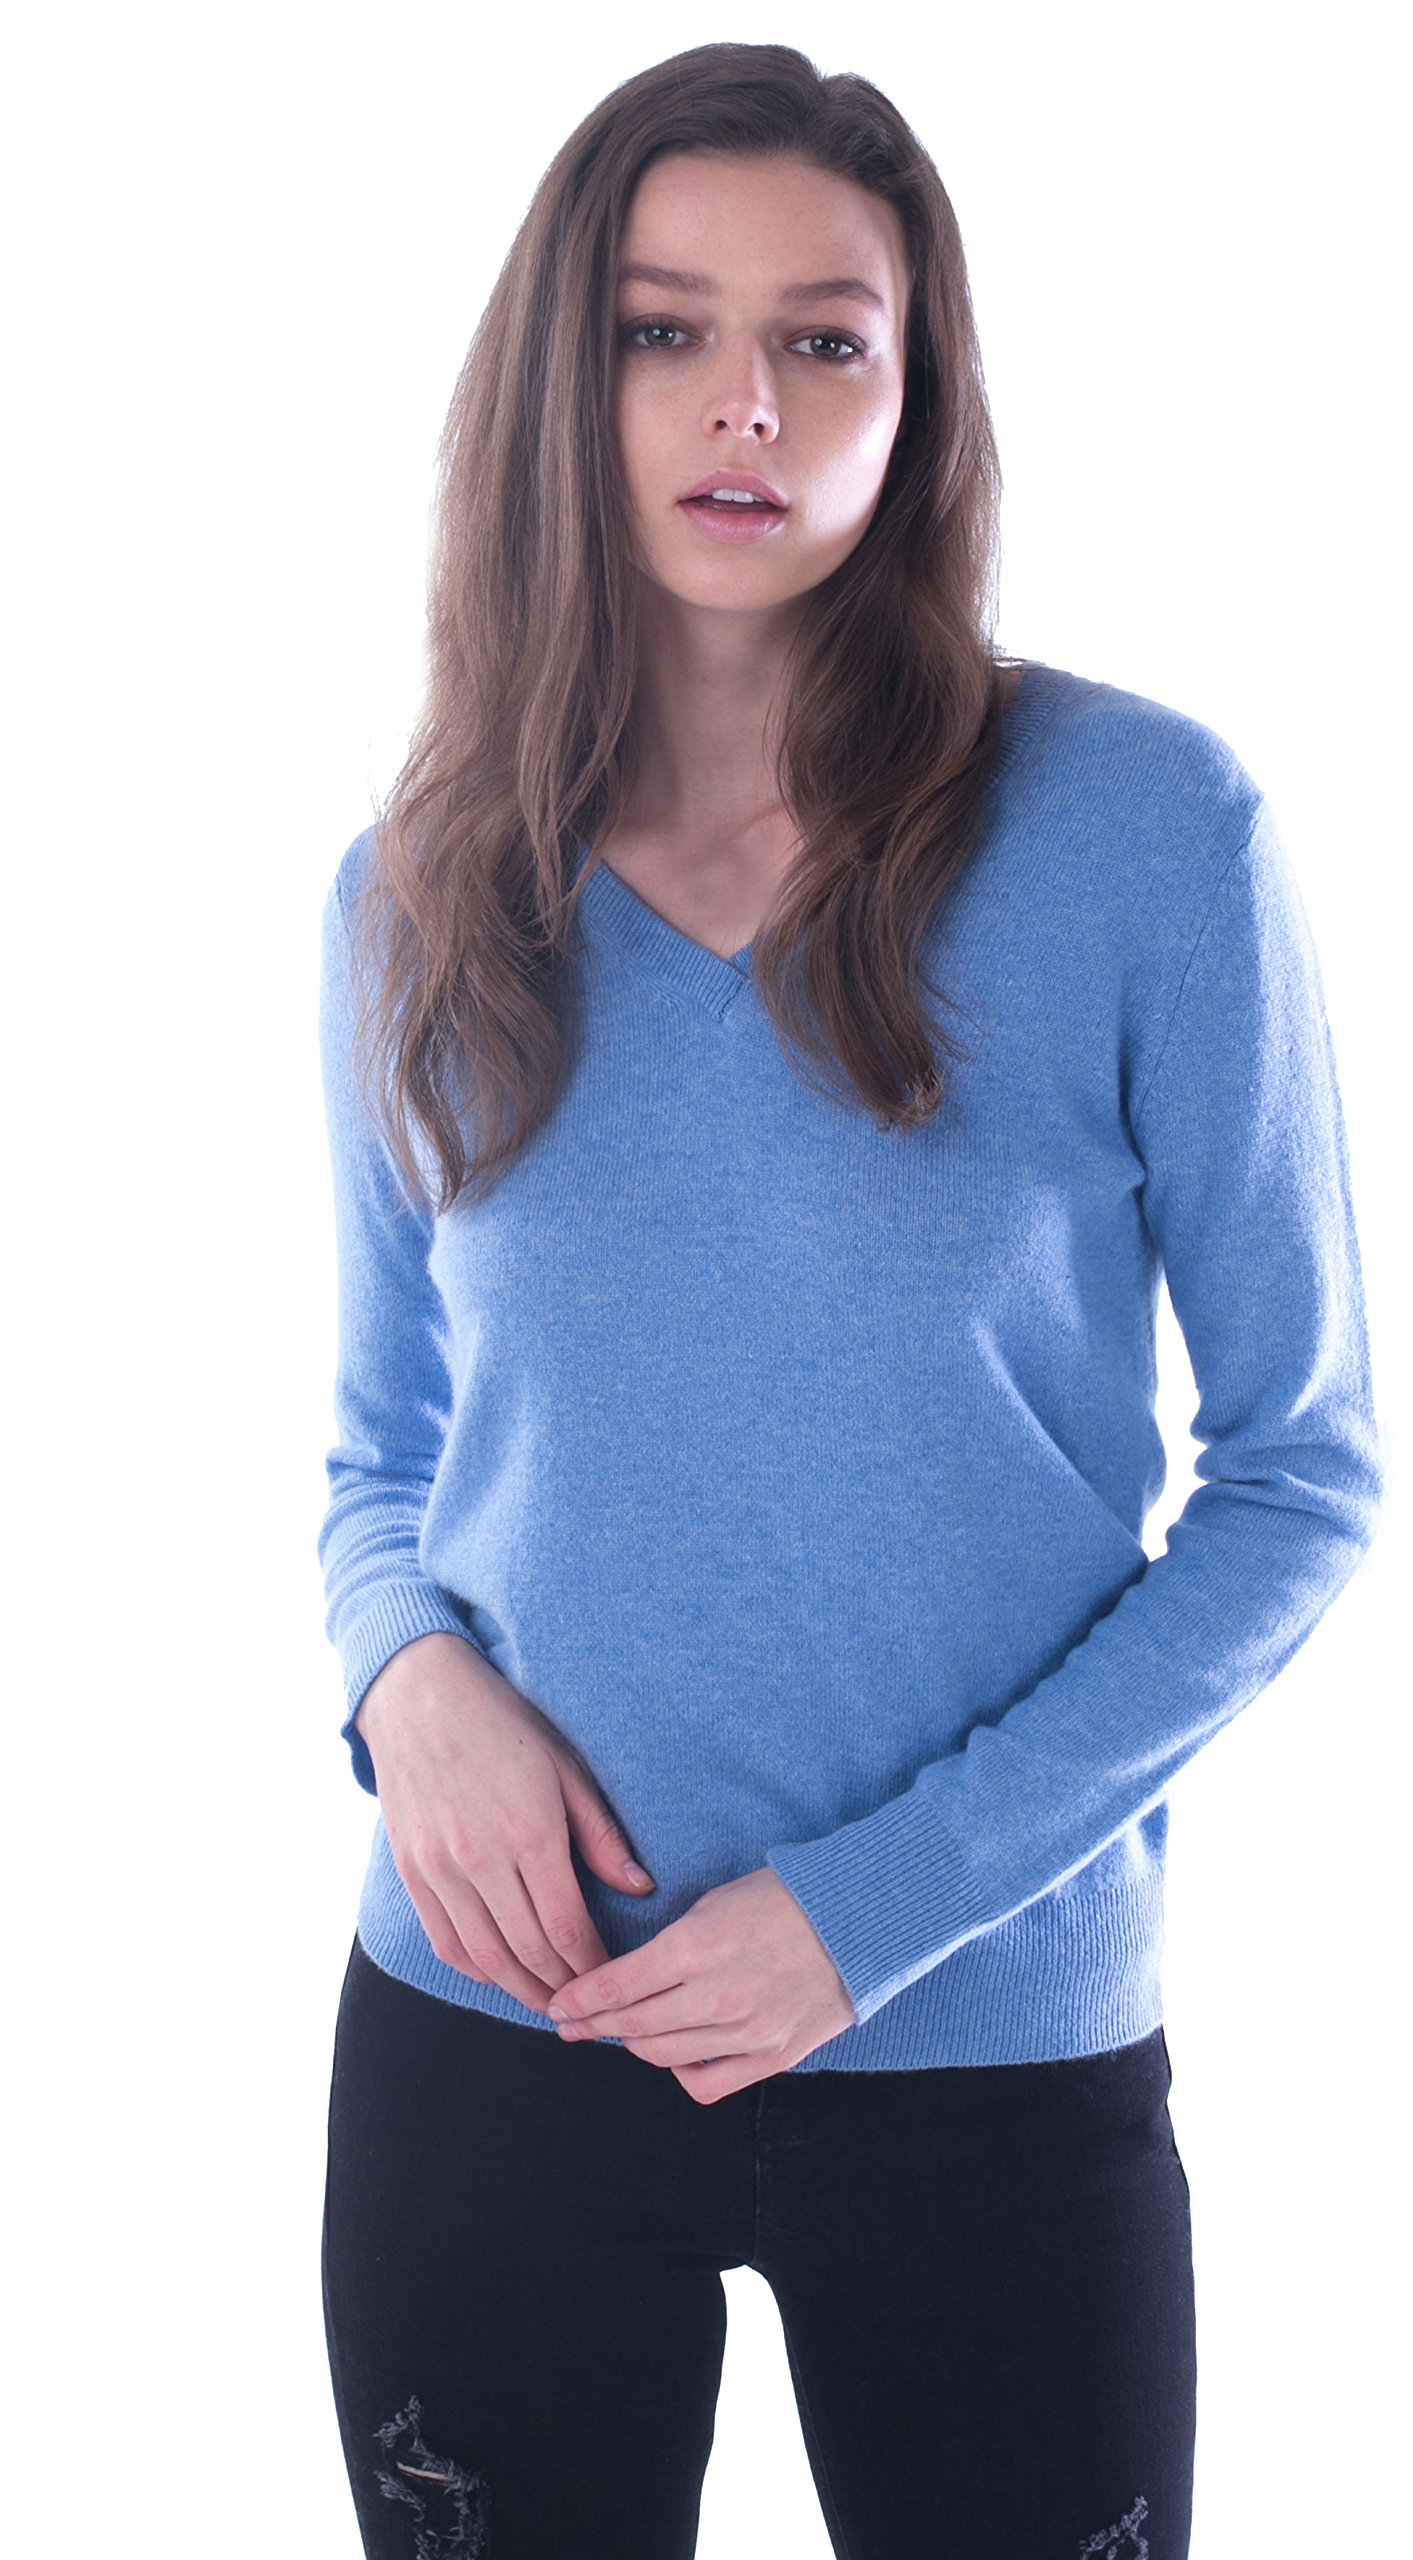 cashmere 4 U 100% Cashmere Sweater Slim-Fit Pullover With Elbow Patches For Women by